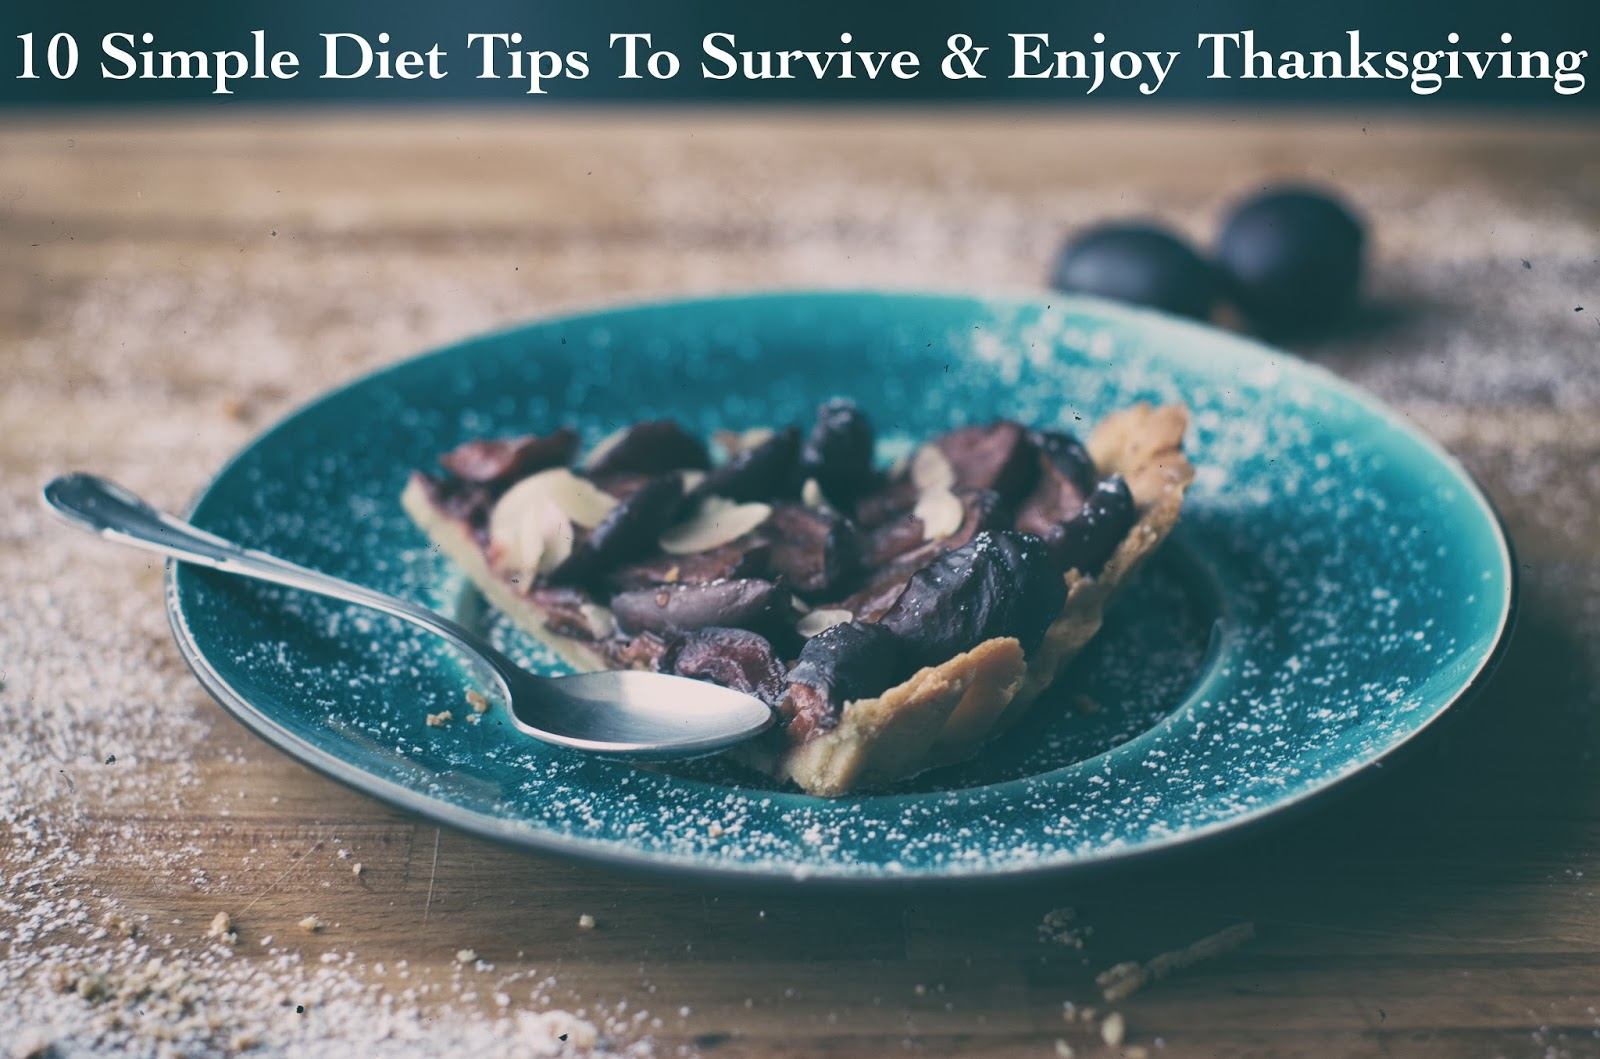 Thanksgiving Diet Tips, HOw To Enjoy Thanksgiving with blowing your diet.